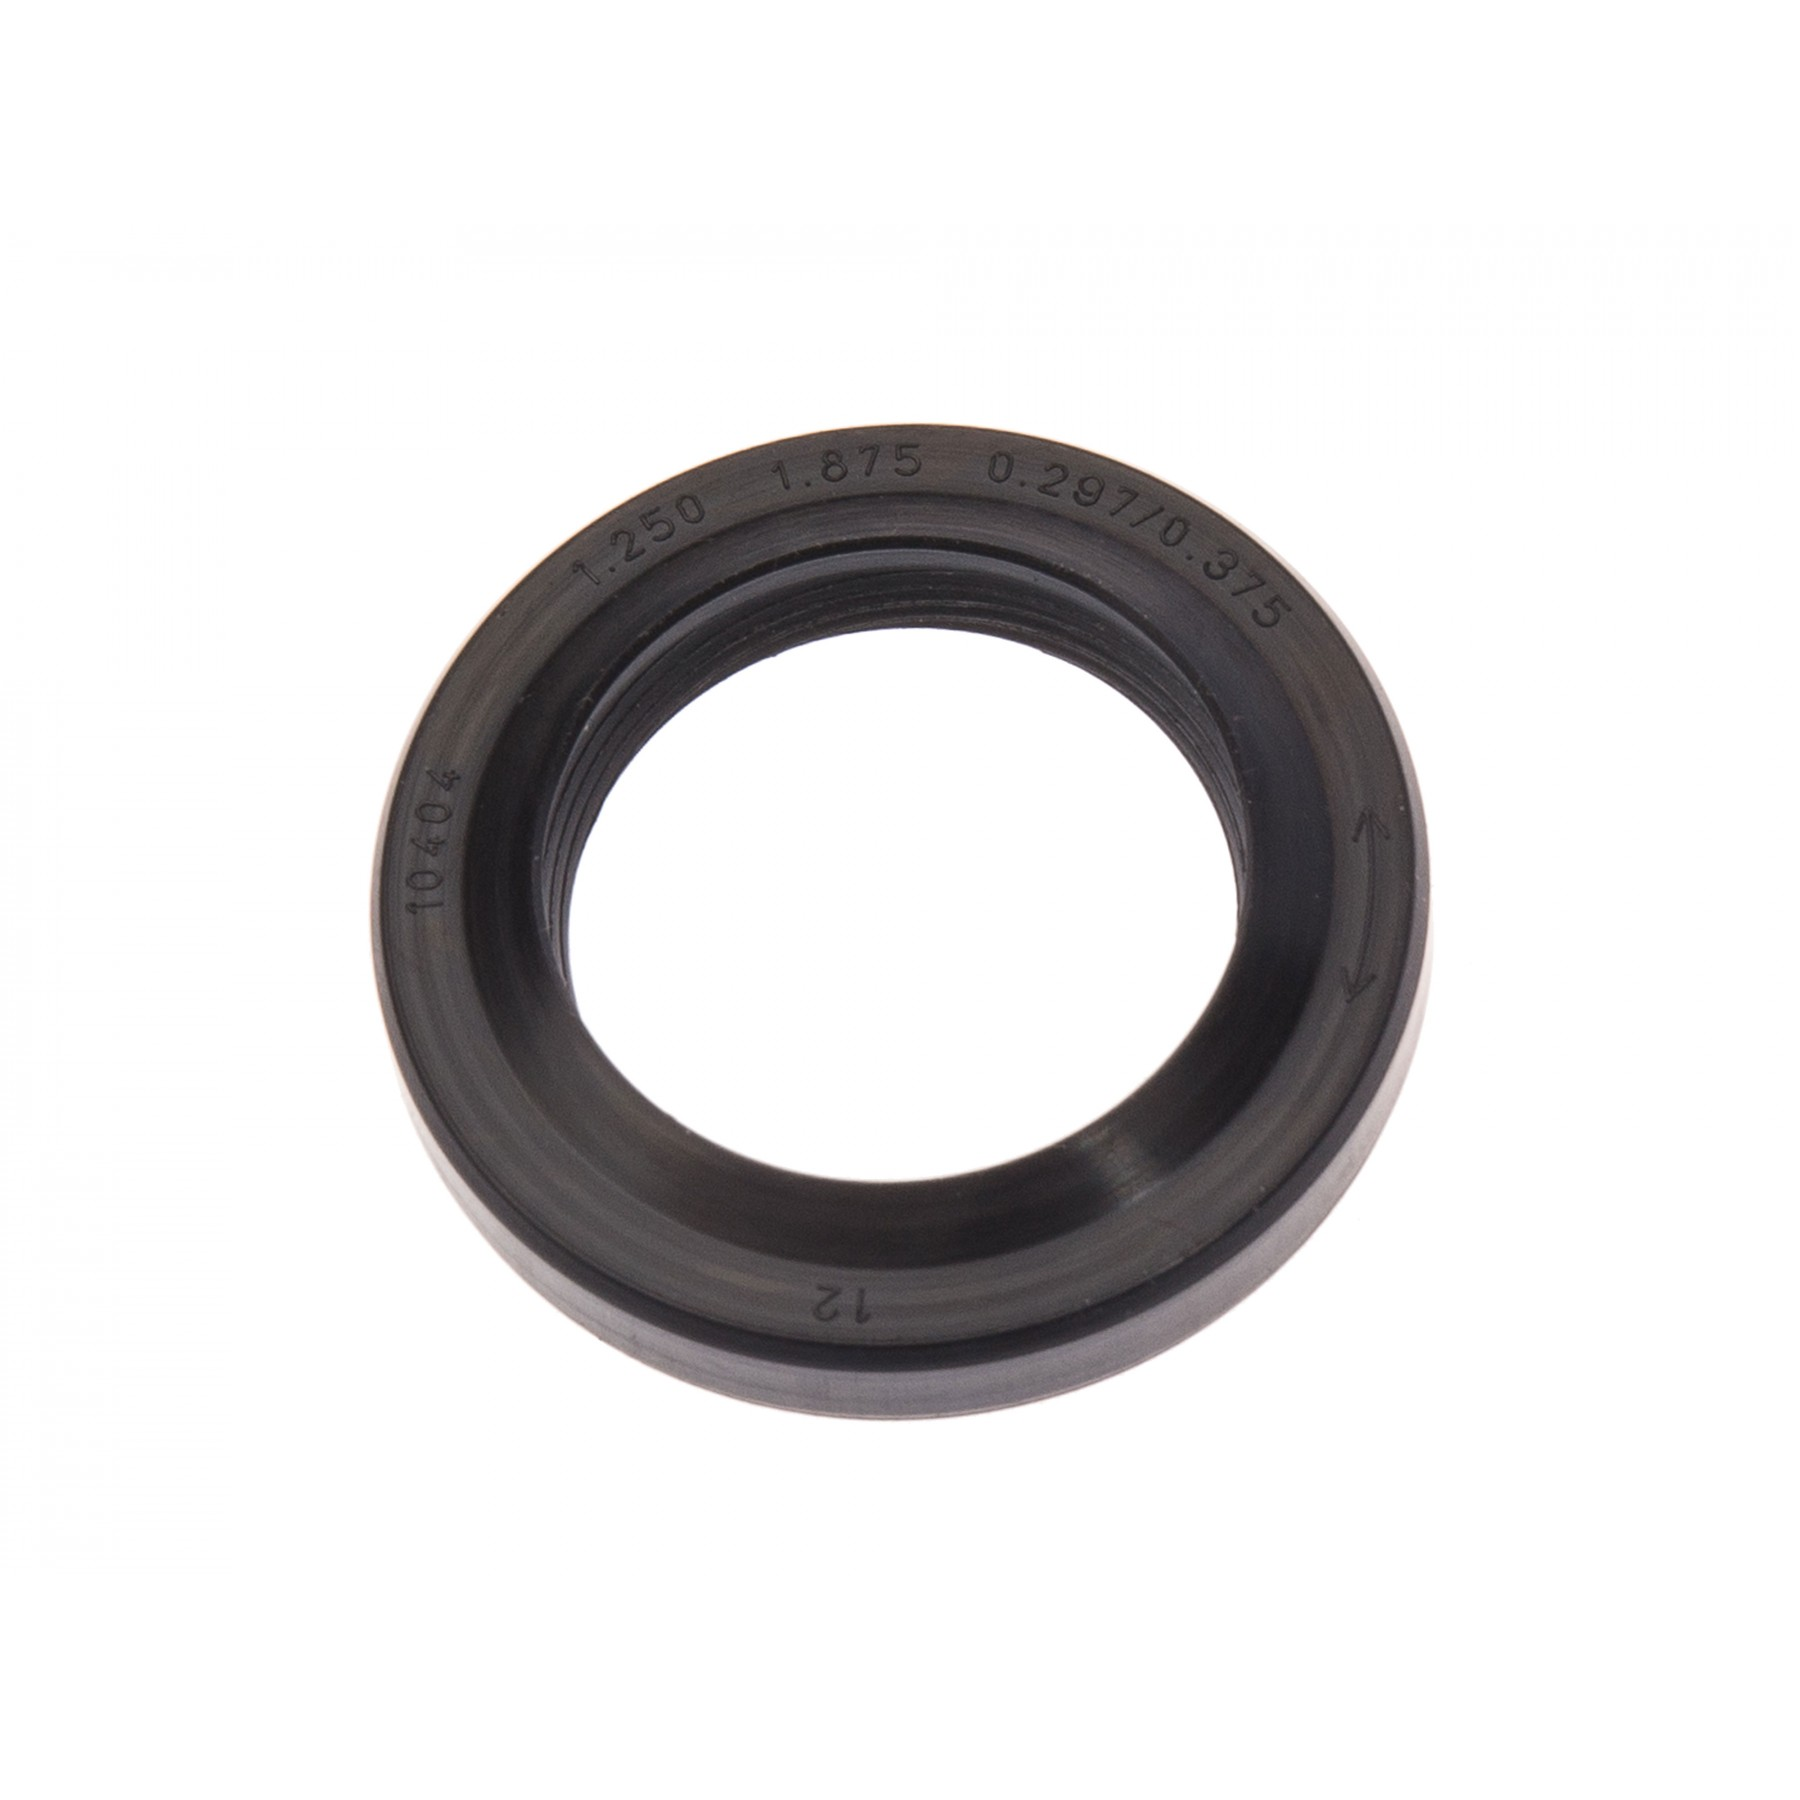 DIFF OUTPUT SHAFT OIL SEAL